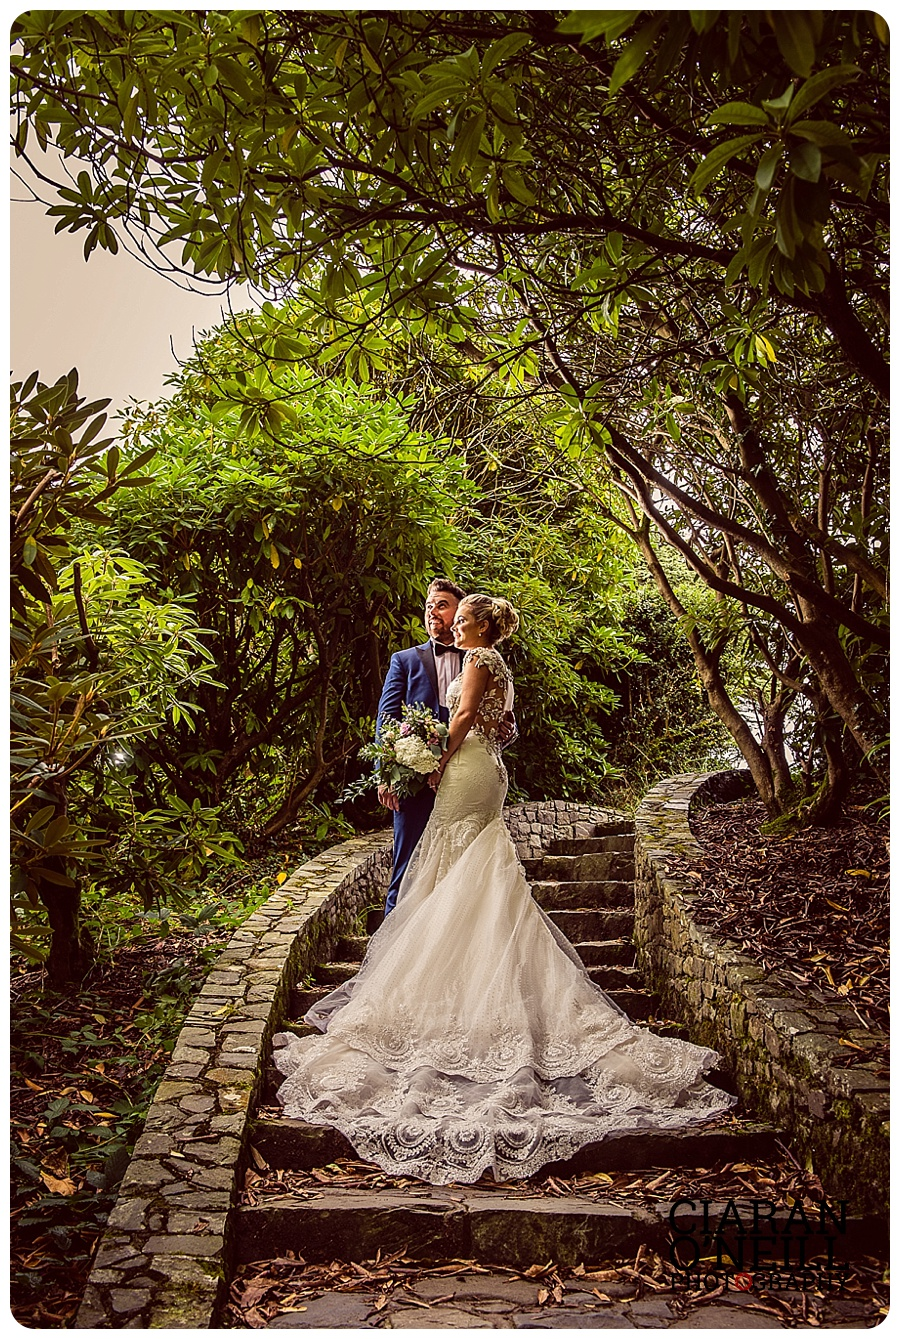 Melissa & Paul's wedding at the Burrendale Hotel by Ciaran O'Neill Photography